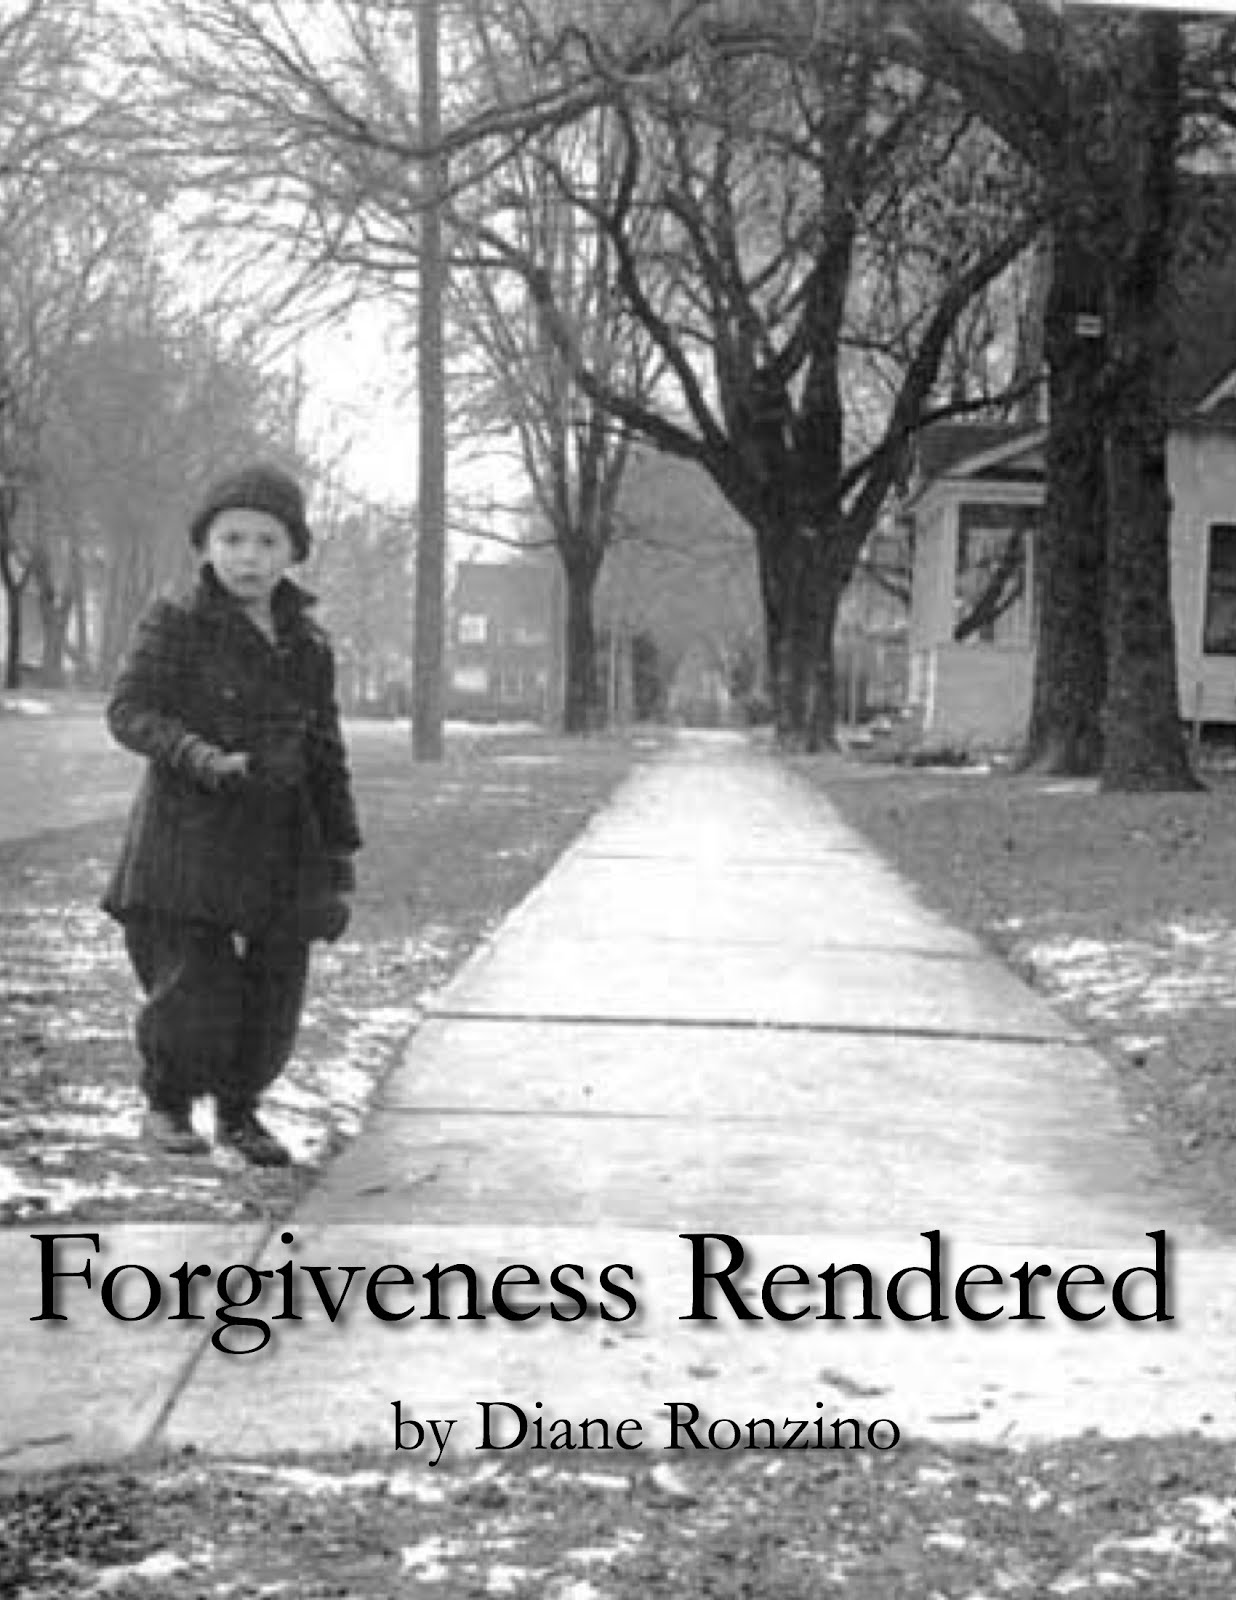 Forgiveness Rendered